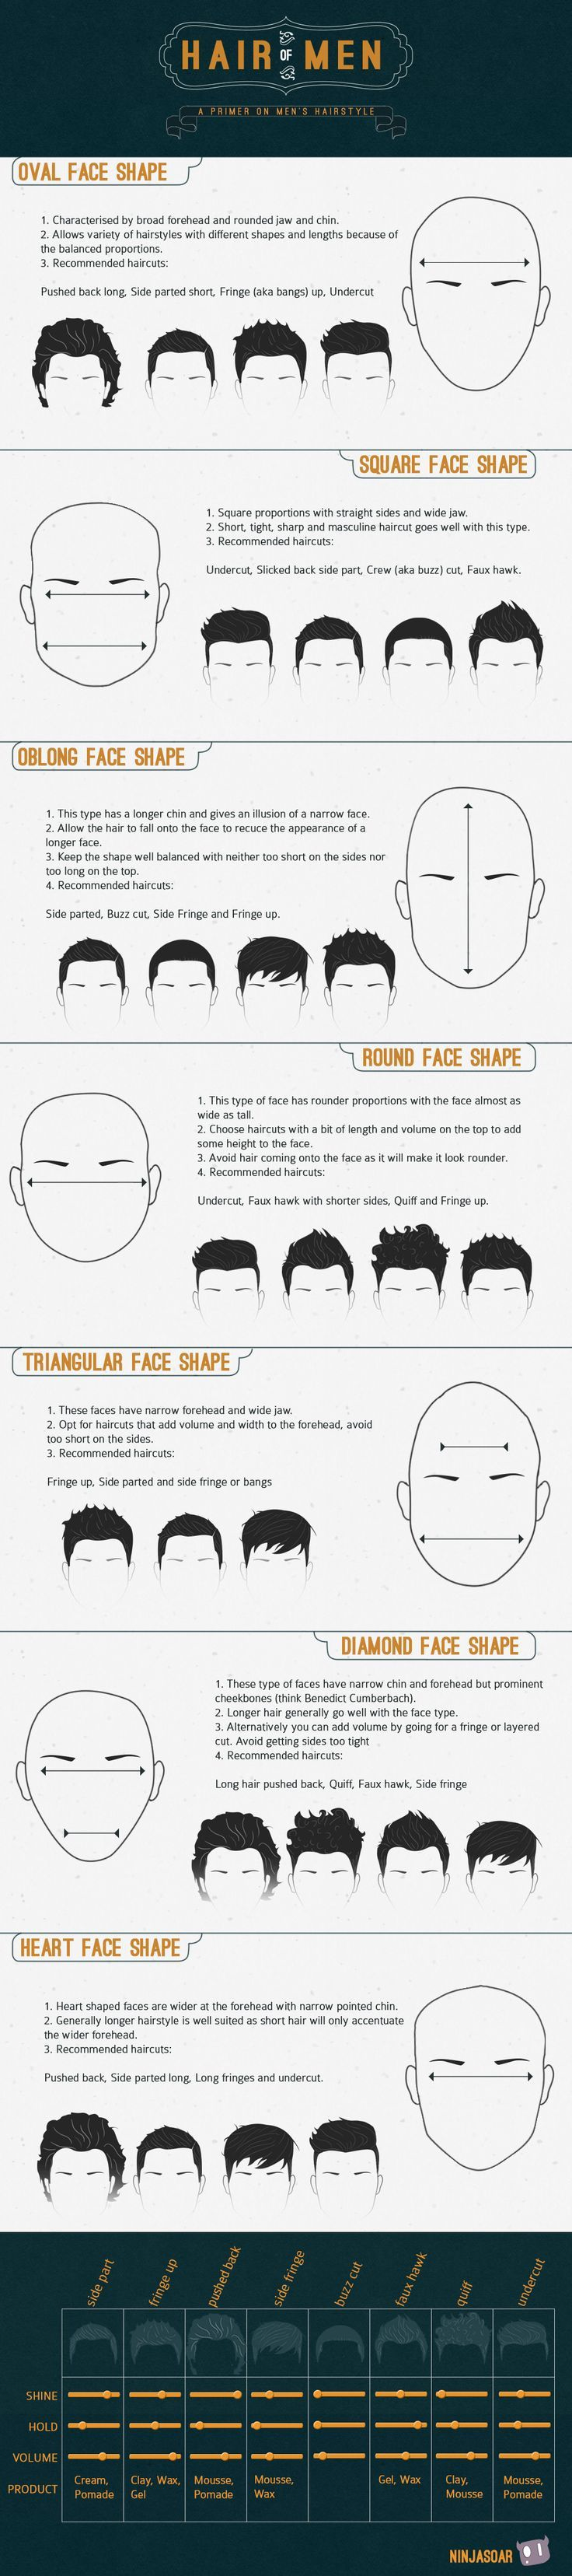 A Guide Finding The Right Haircut | ShortList Magazine: